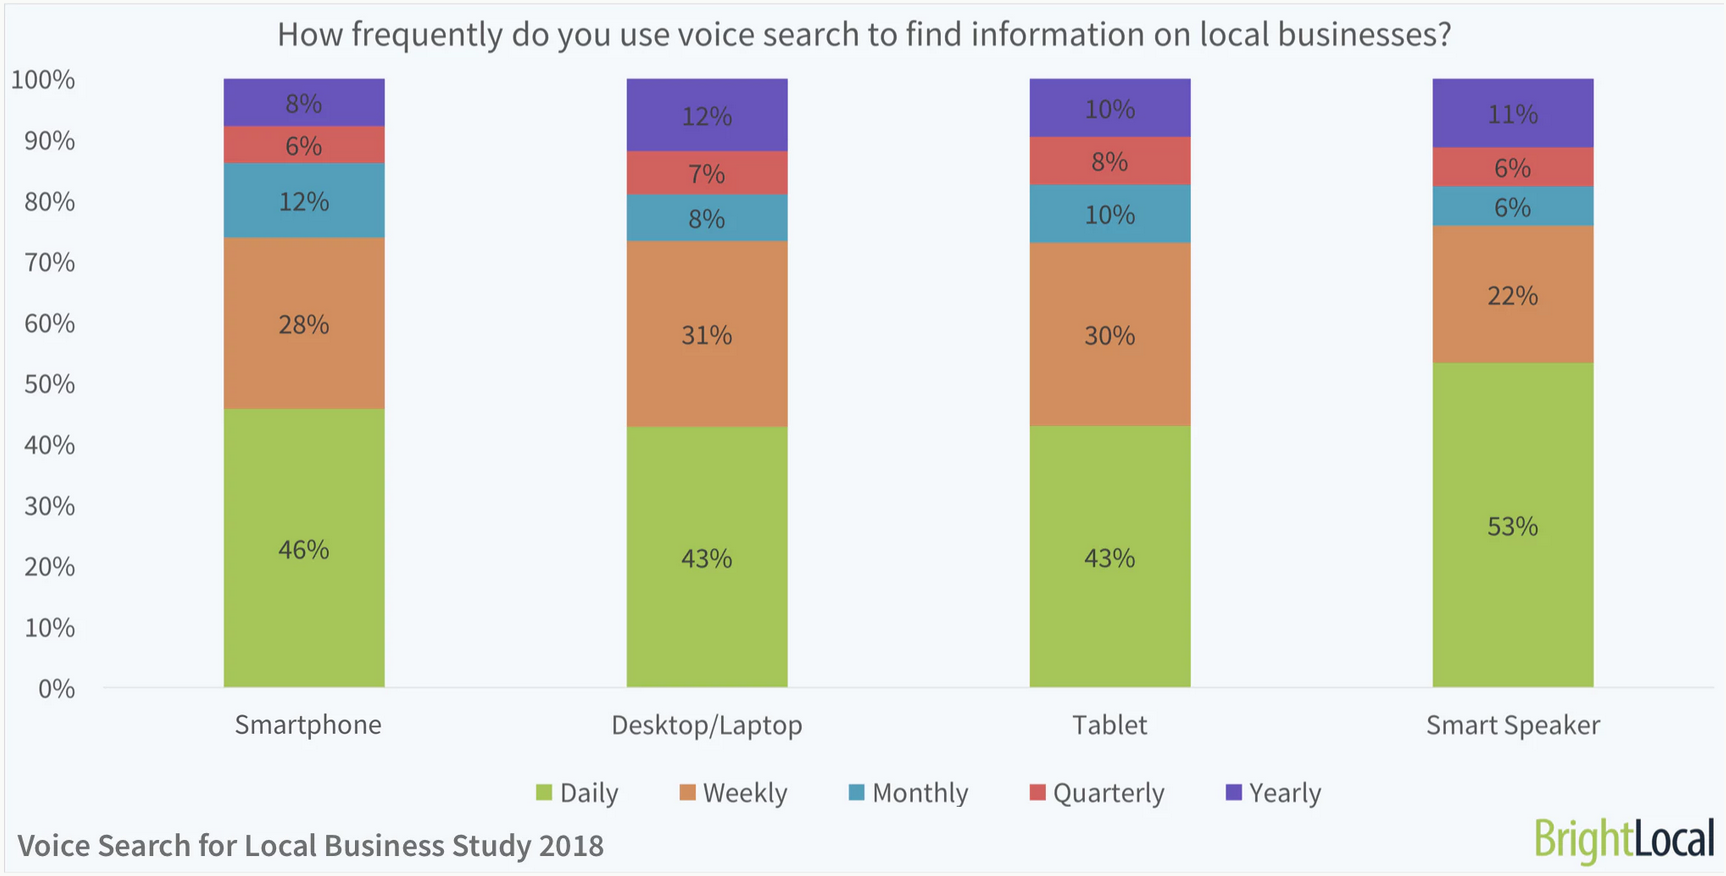 How frequently do you use voice search to find information on local businesses?